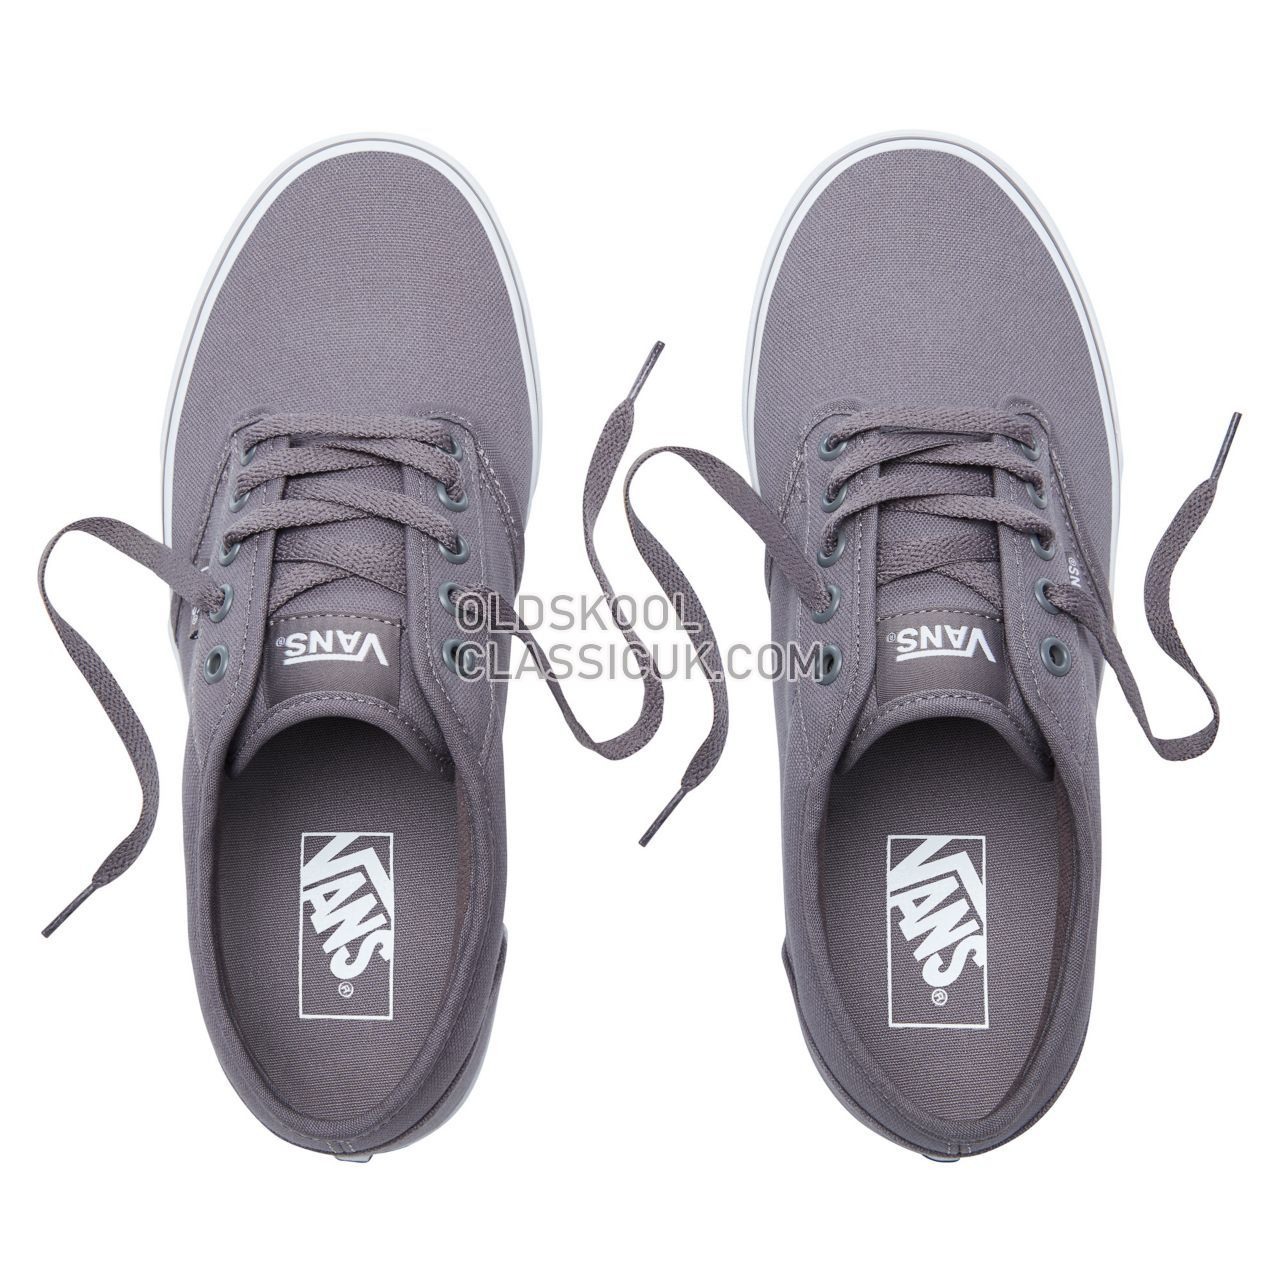 Vans Canvas Atwood Sneakers Mens (Canvas) Pewter/White VN000TUY4WV Shoes